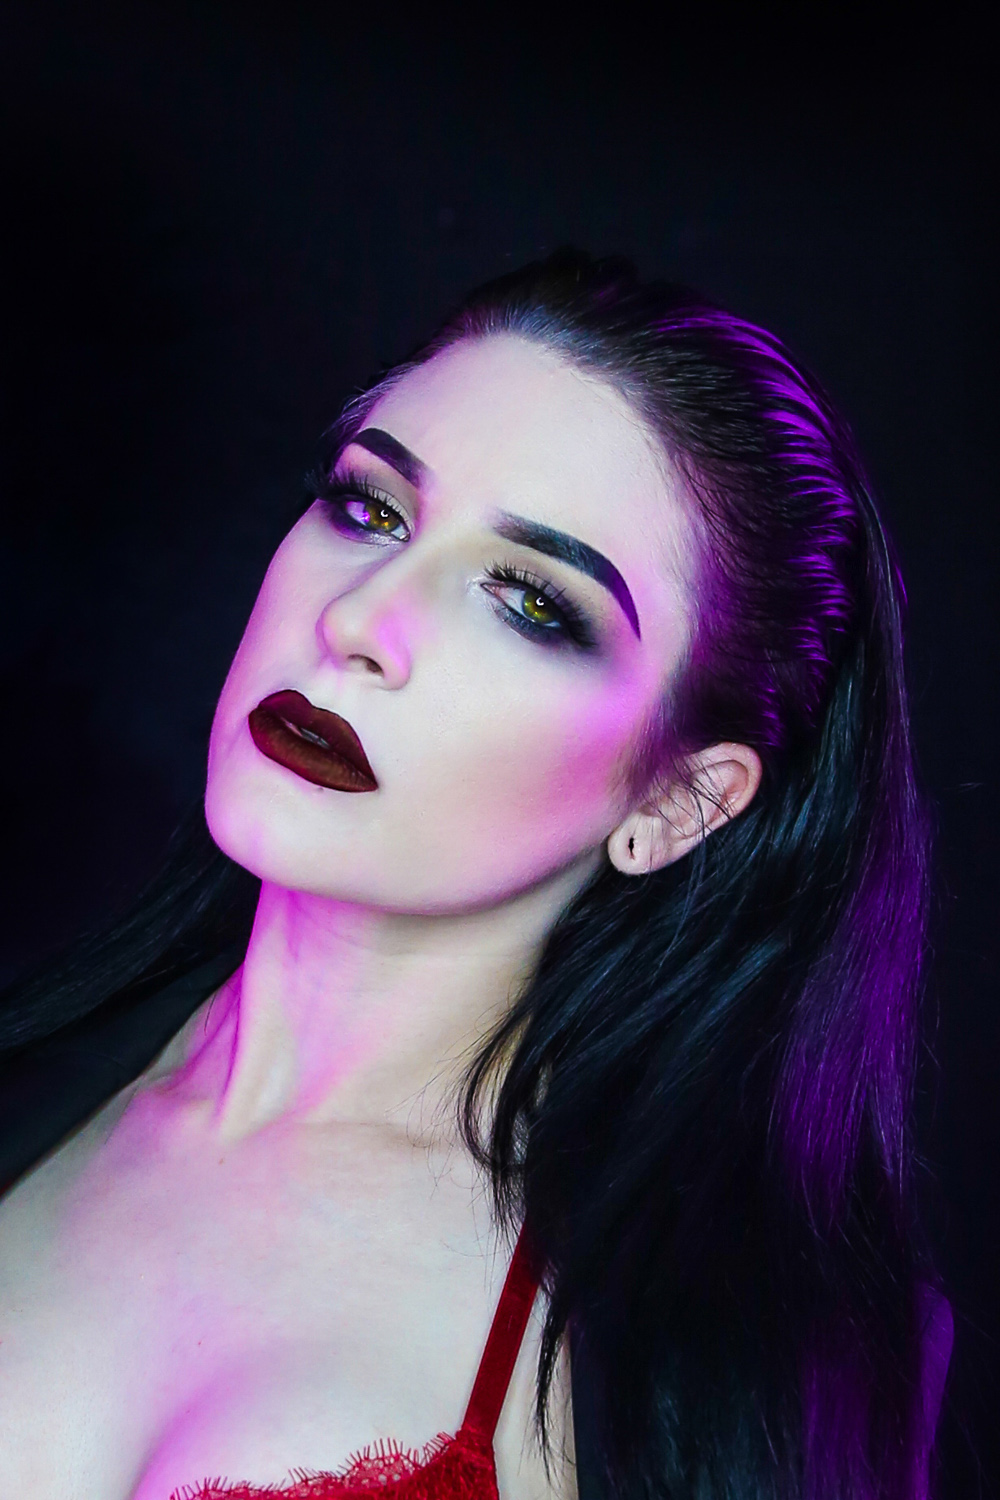 girl with rim lighting - How to use Colored Gels to Create Unique and Creative Lighting